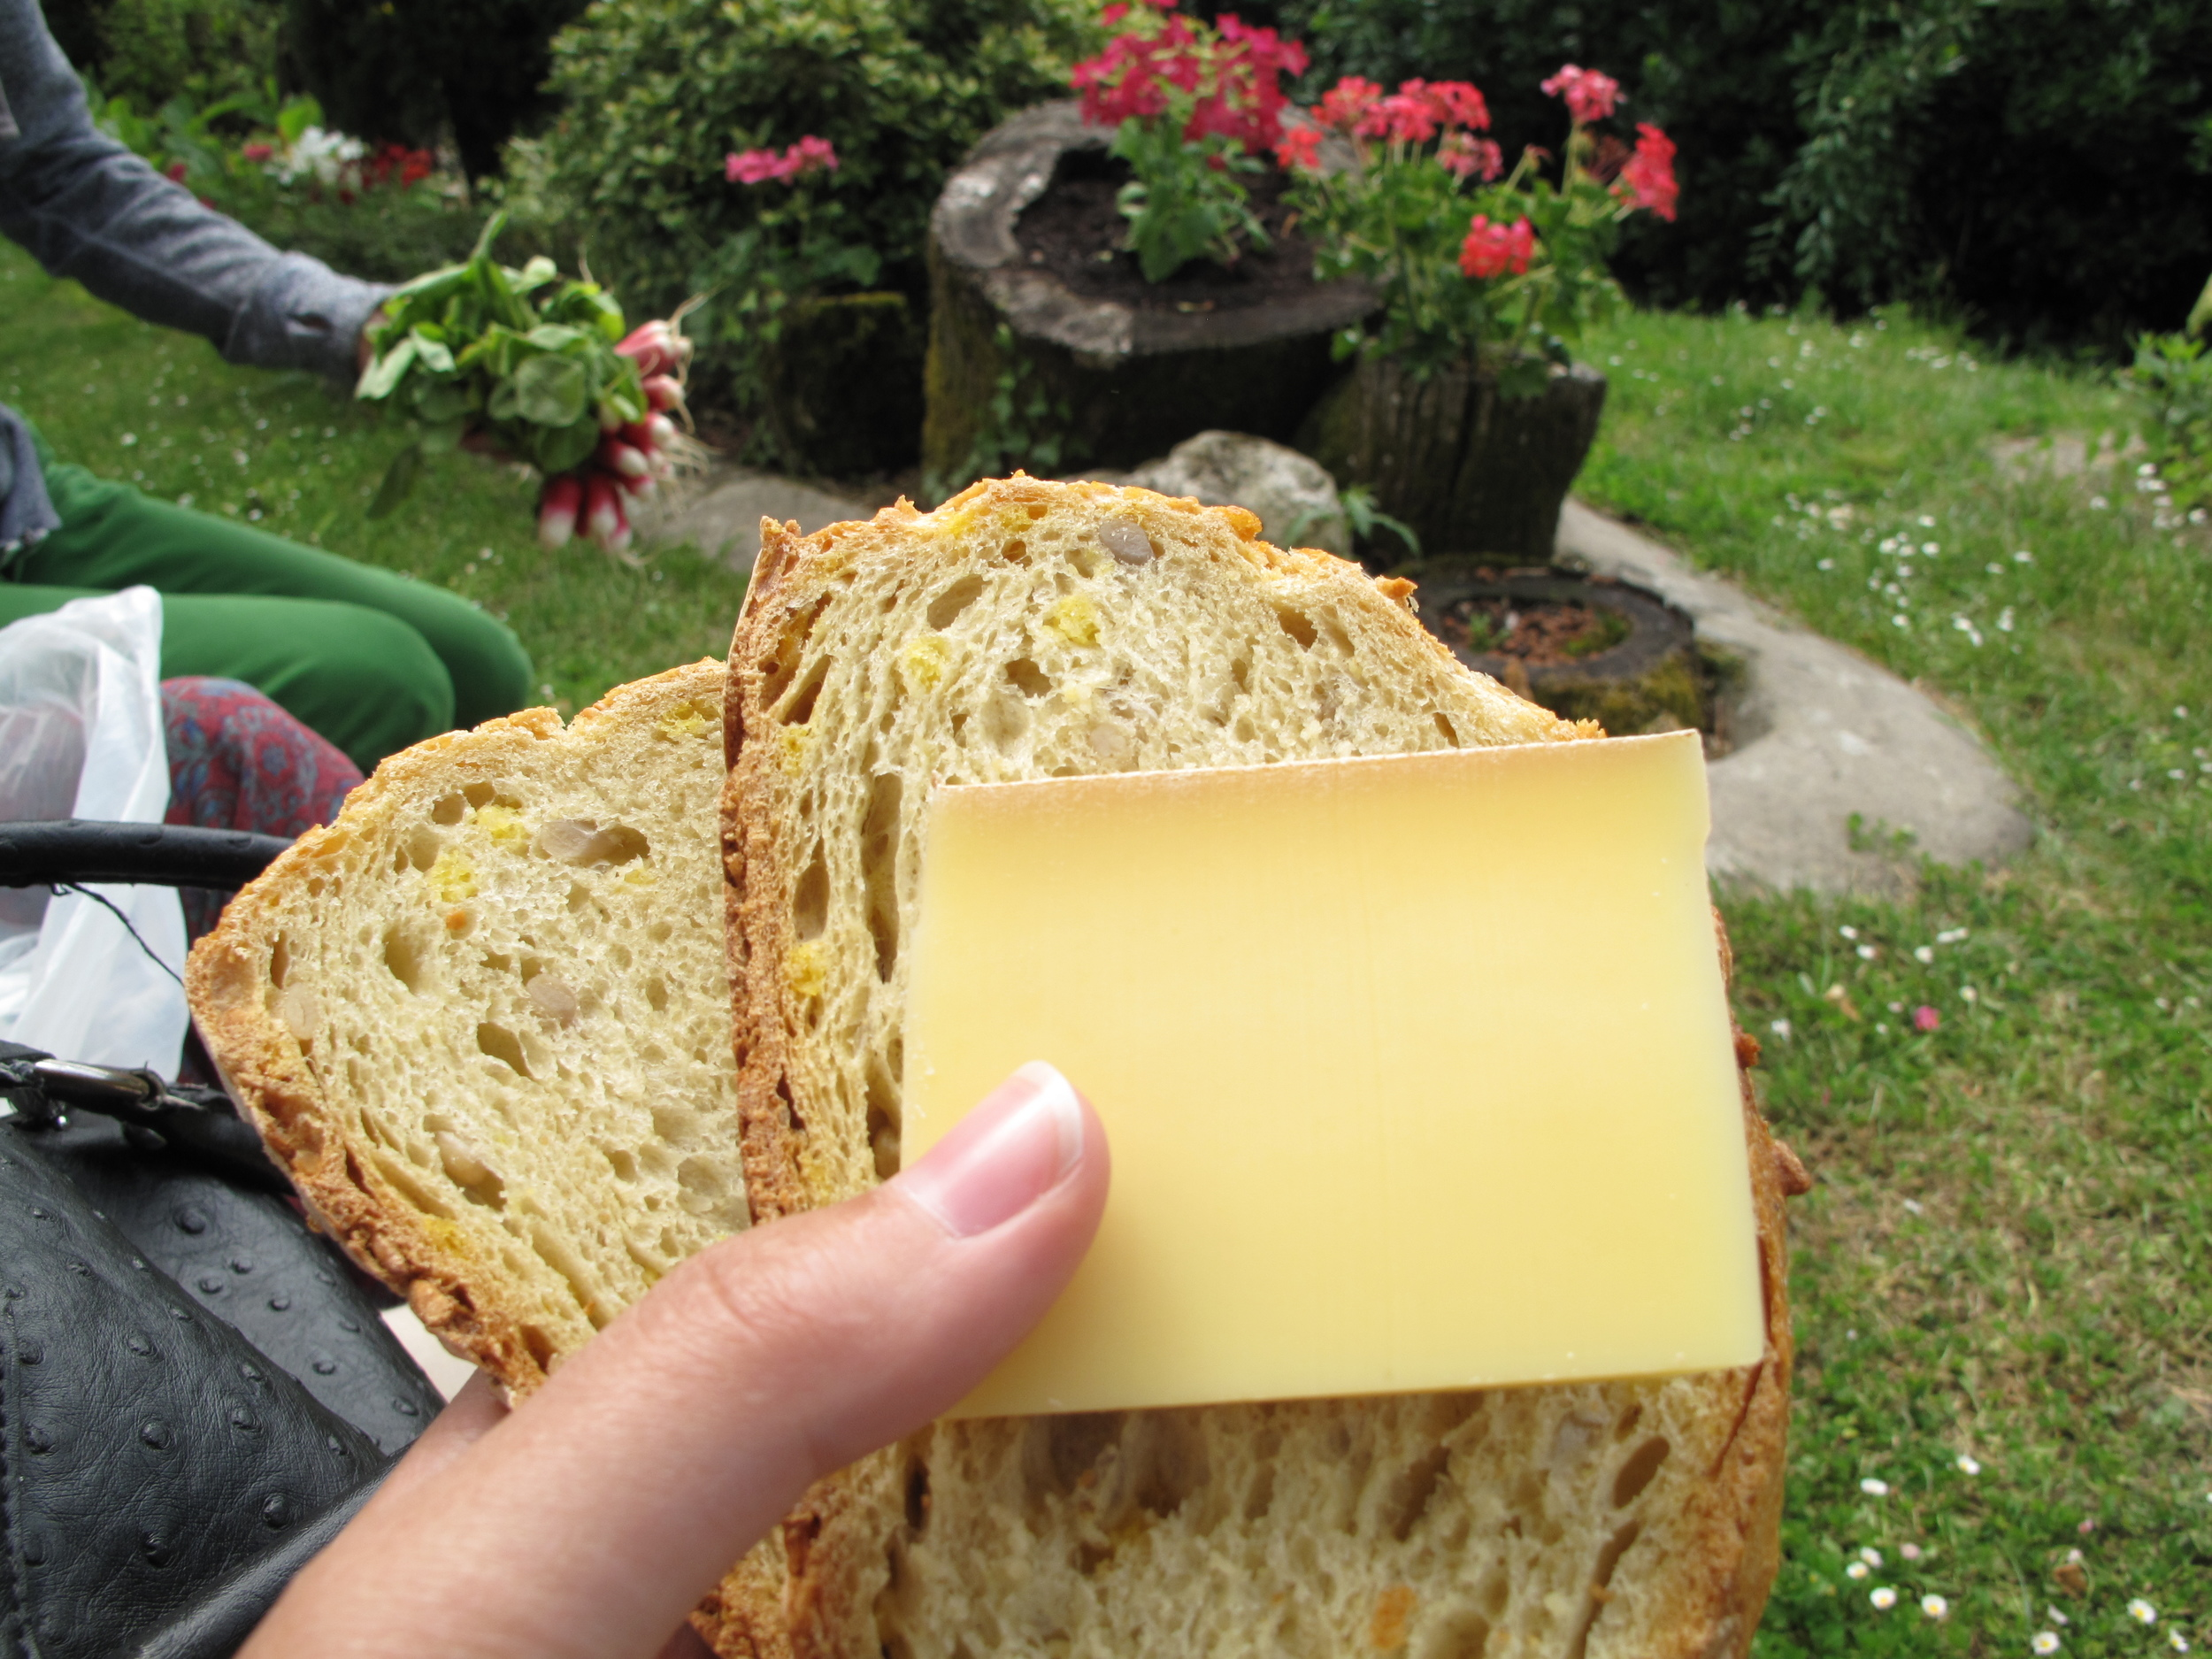 A picnic with friends in Duras - with bread and cheese and radishes from the market